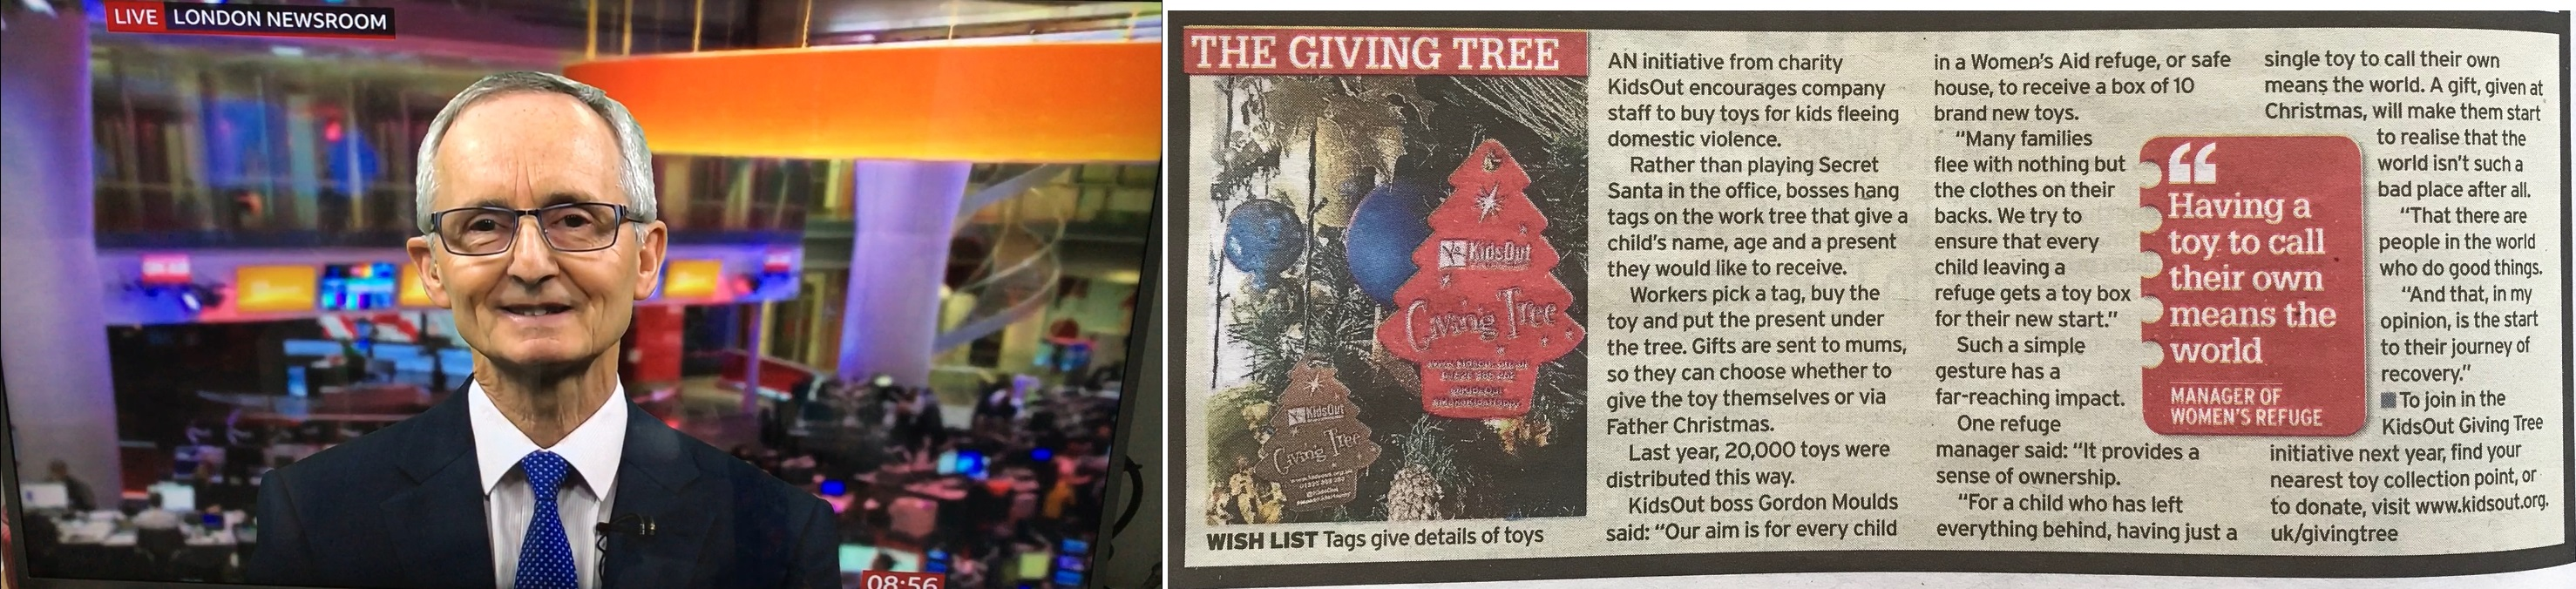 Giving Tree in the Press! Left: Gordon Moulds, KidsOut CEO, on BBC Breakfast; Right: KidsOut's Giving Tree features in the Daily Mirror